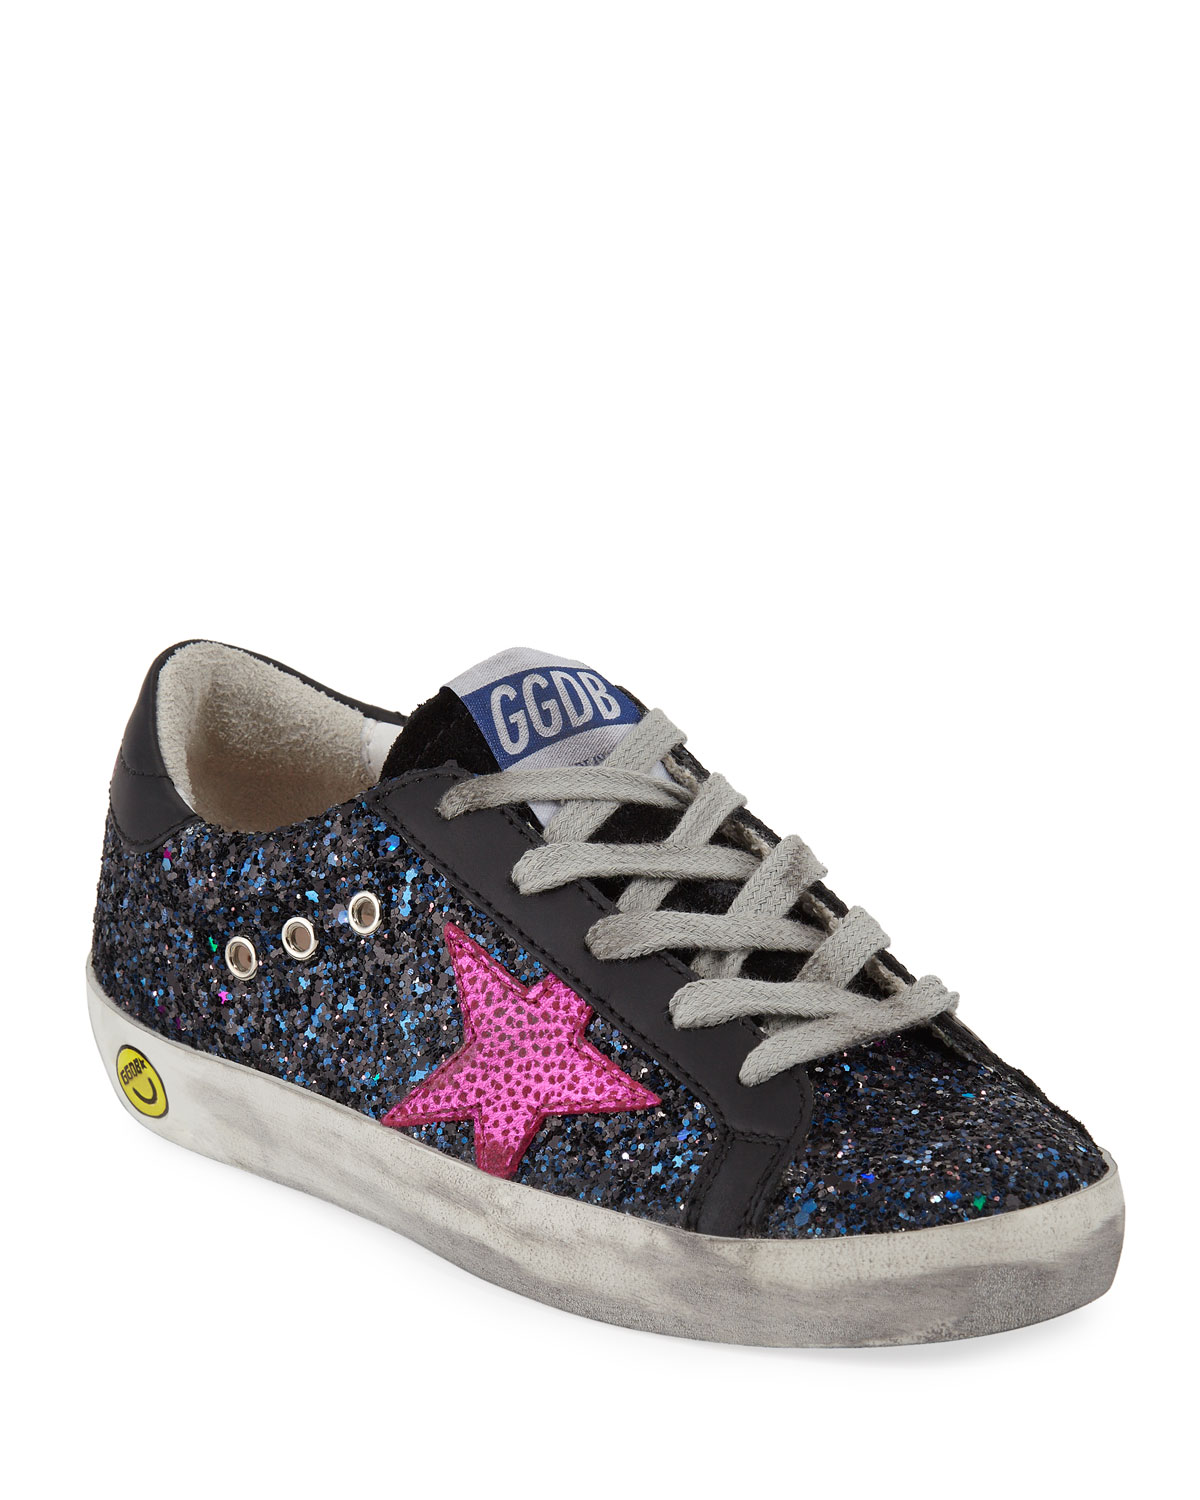 a3313f7934dea Golden Goose Superstar Glittered Low-Top Sneakers, Baby/Toddler ...